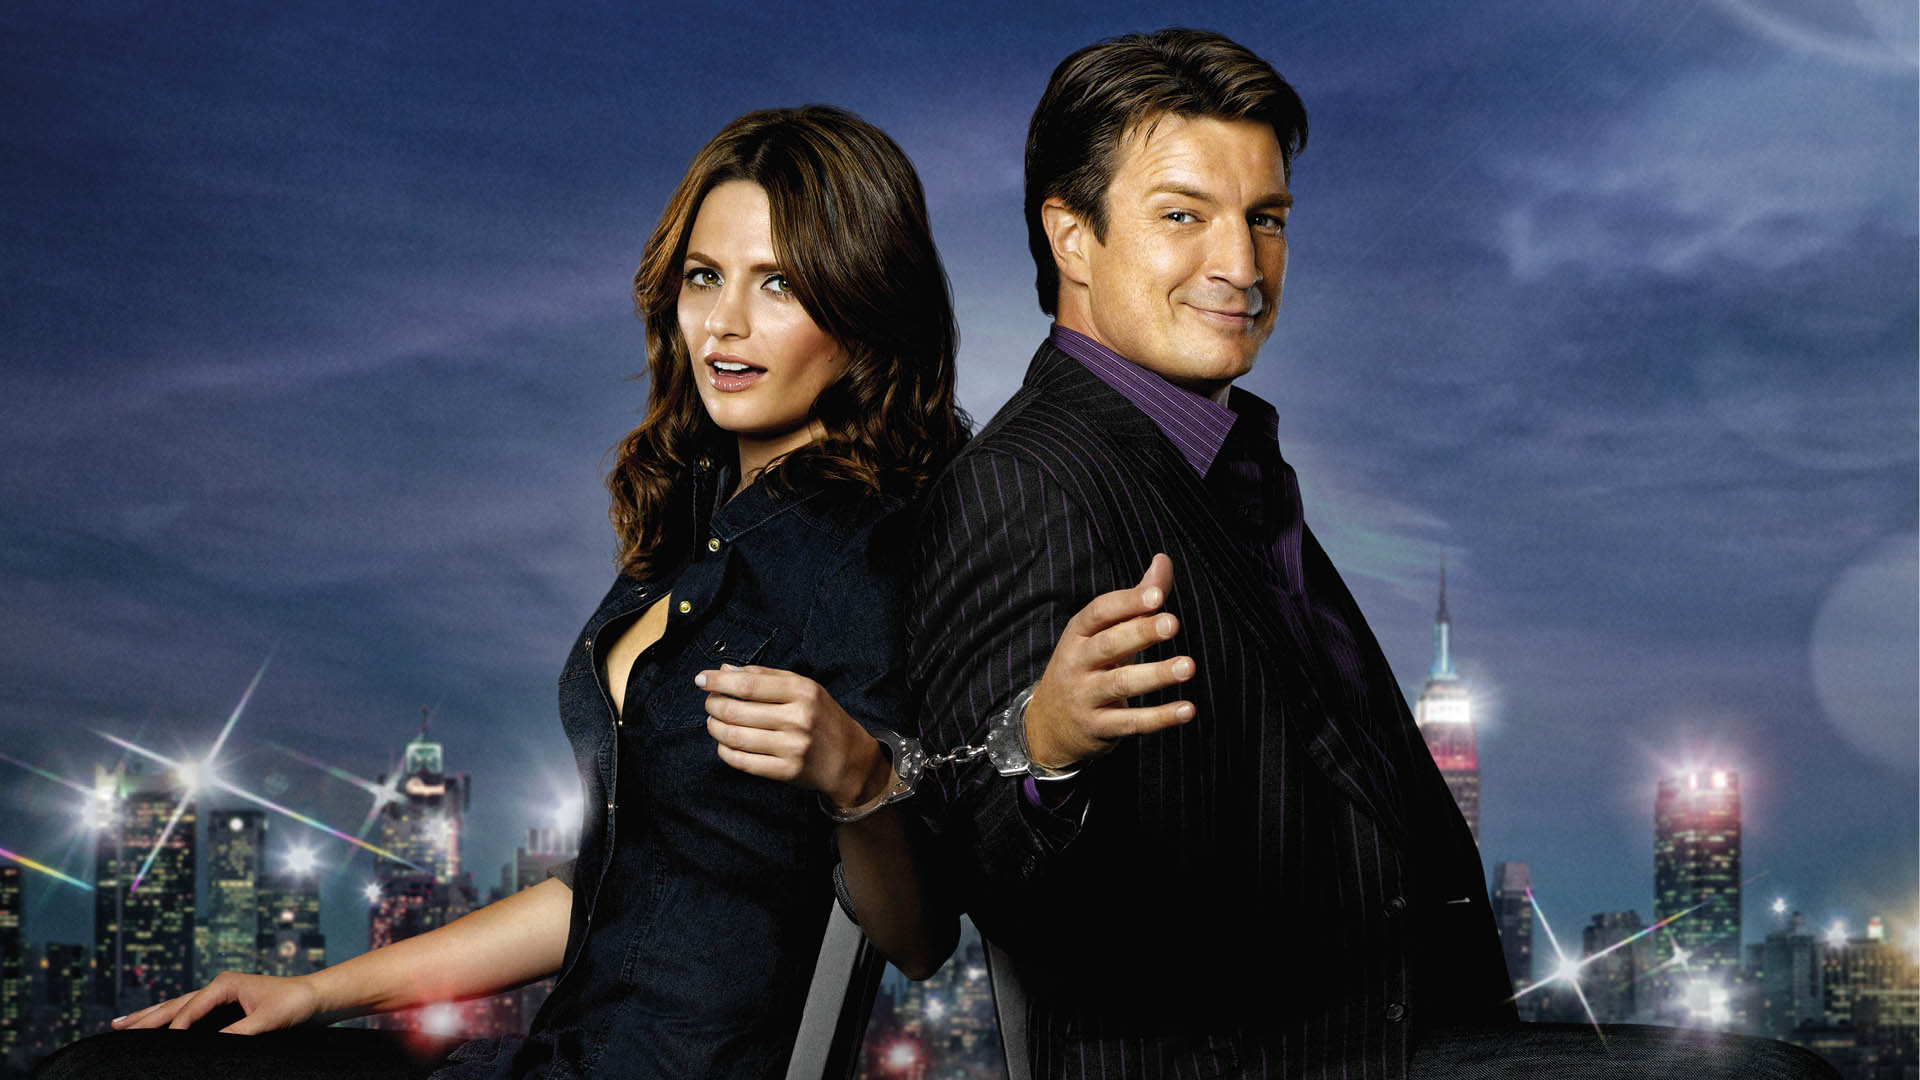 Castle star breaks silence on Stana Katic leaving